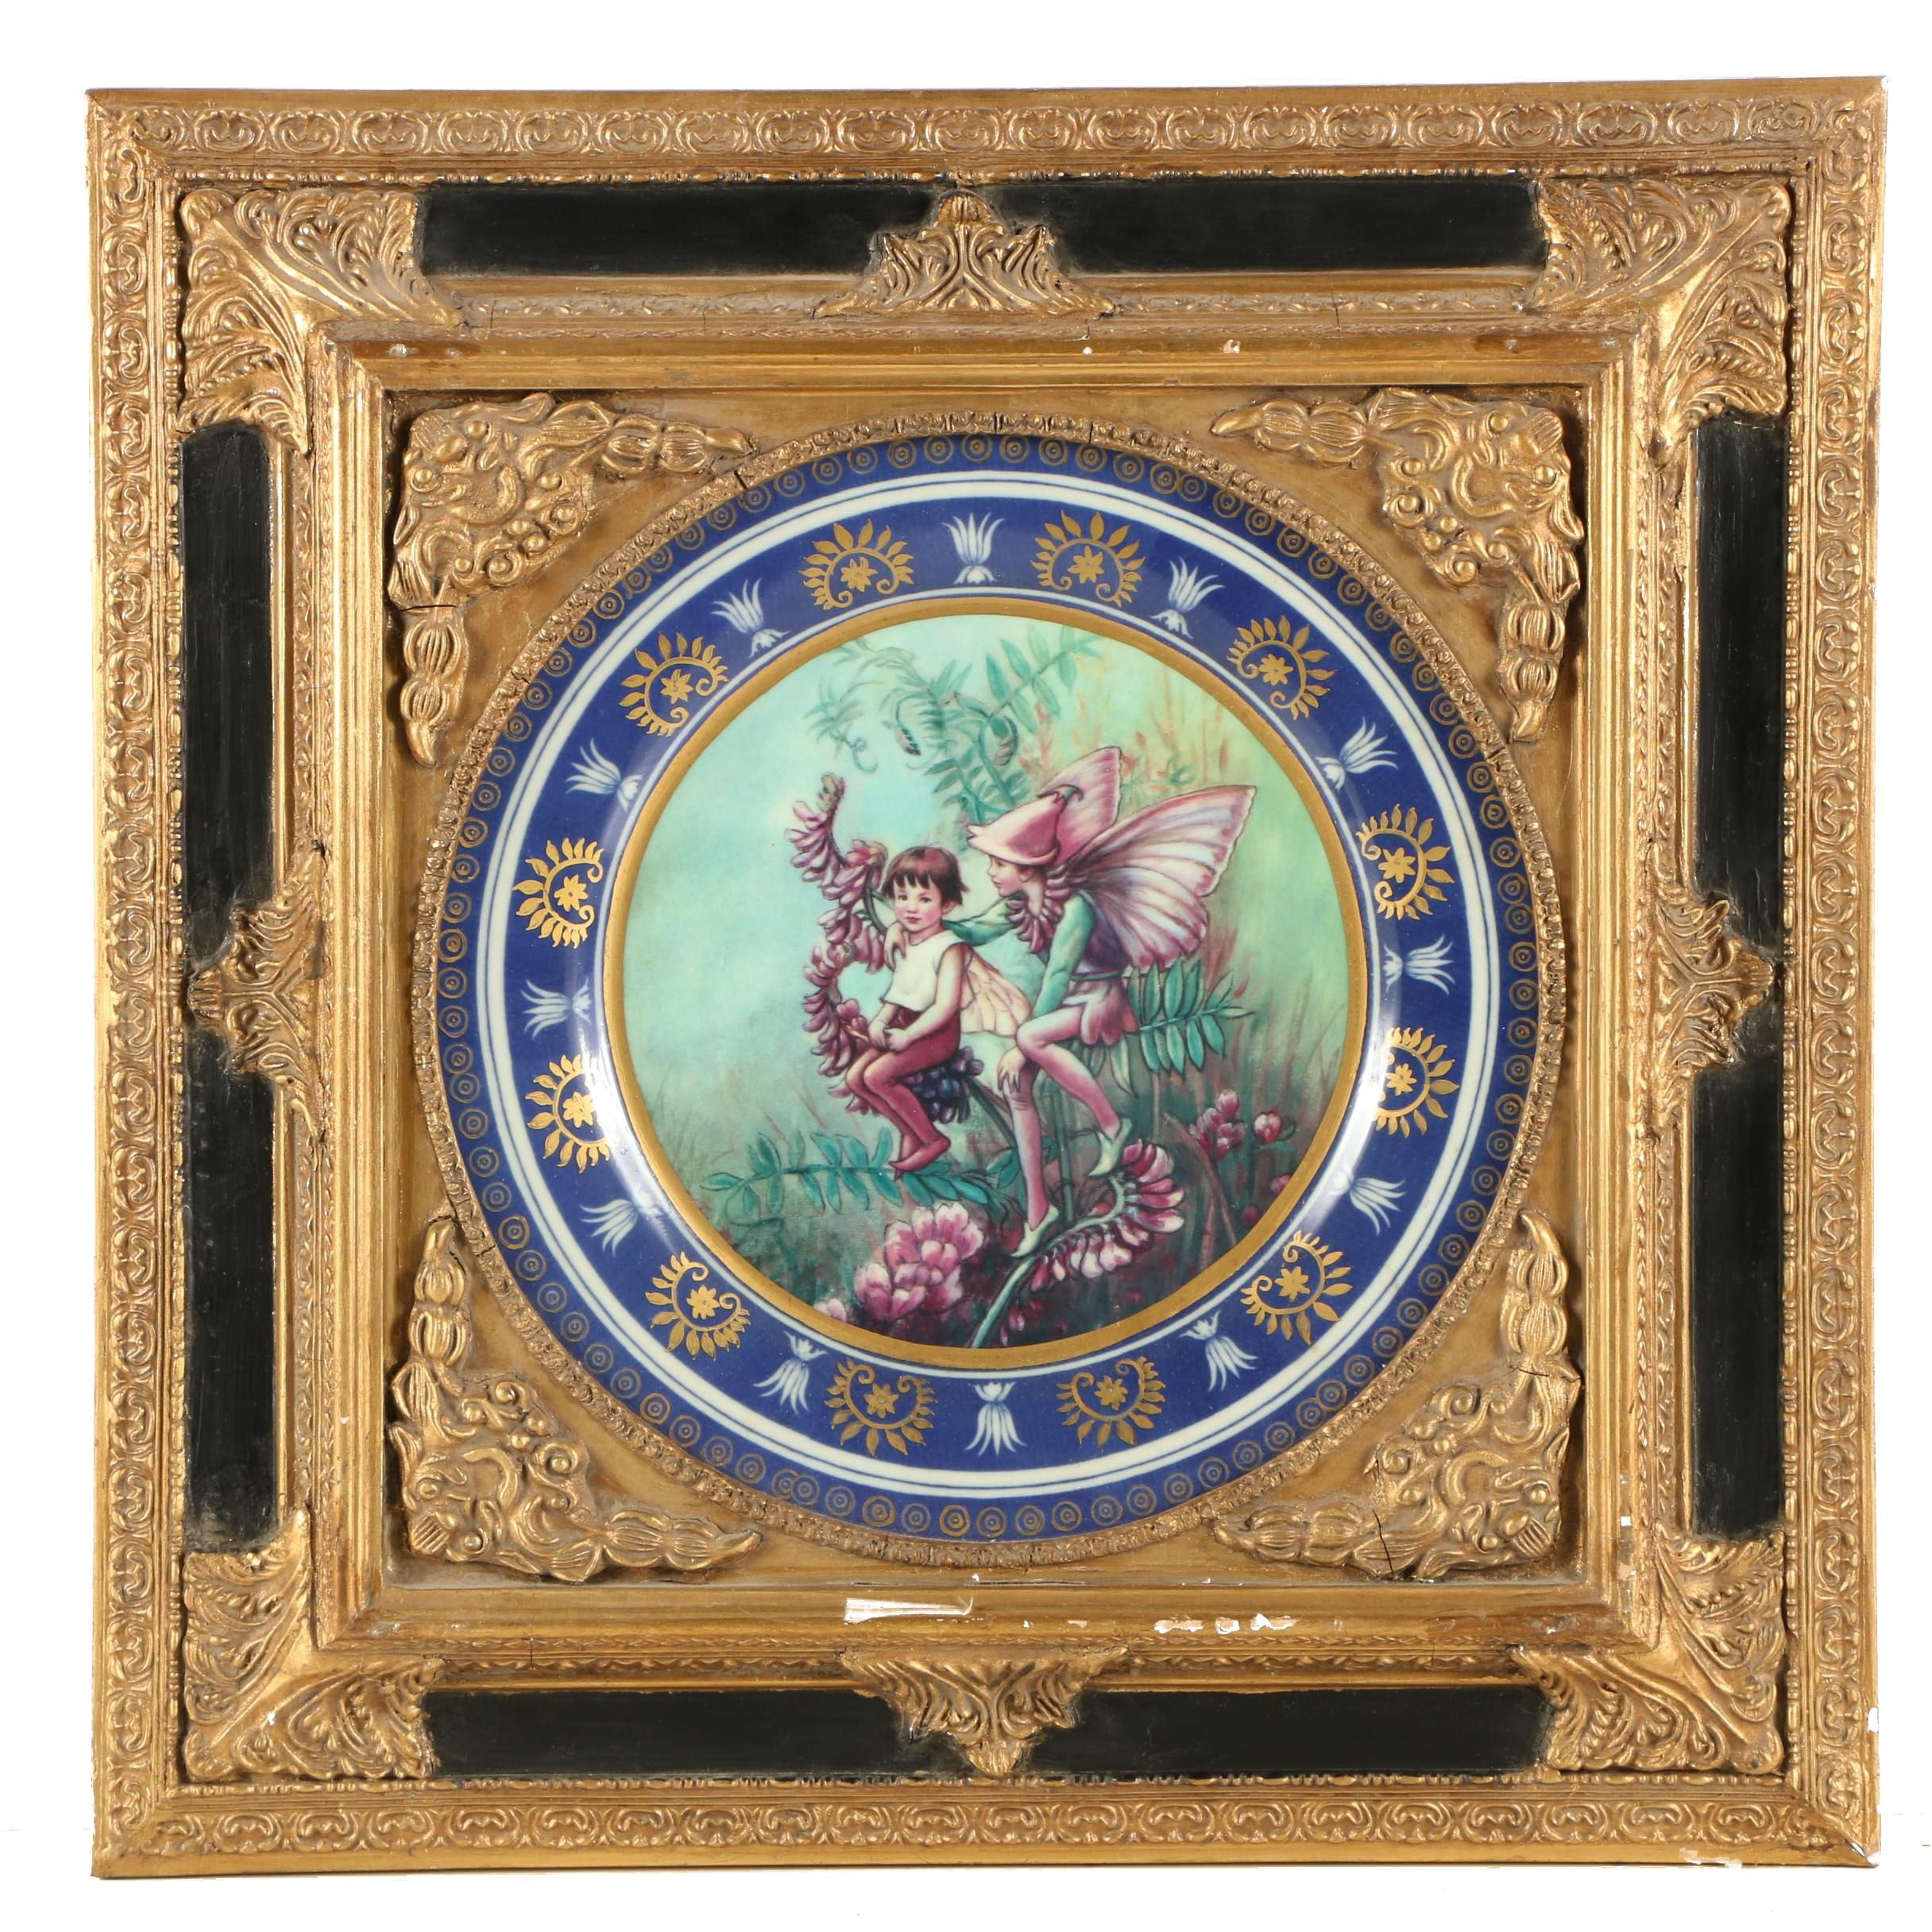 Charger with Fairy Design in Ornate Wooden and Gesso Frame